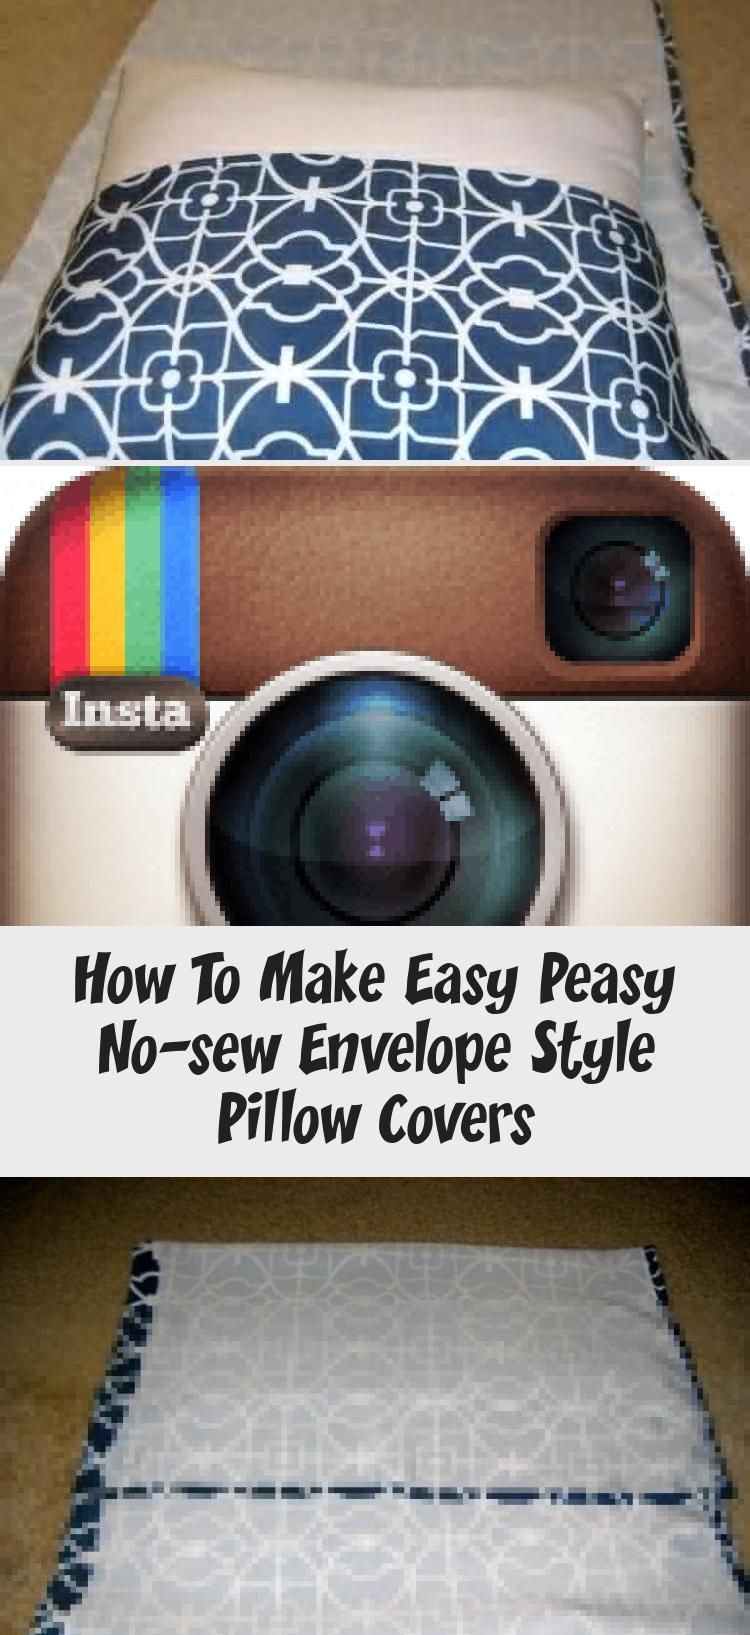 How to Make Easy Peasy No-Sew Envelope Style Pillow Covers